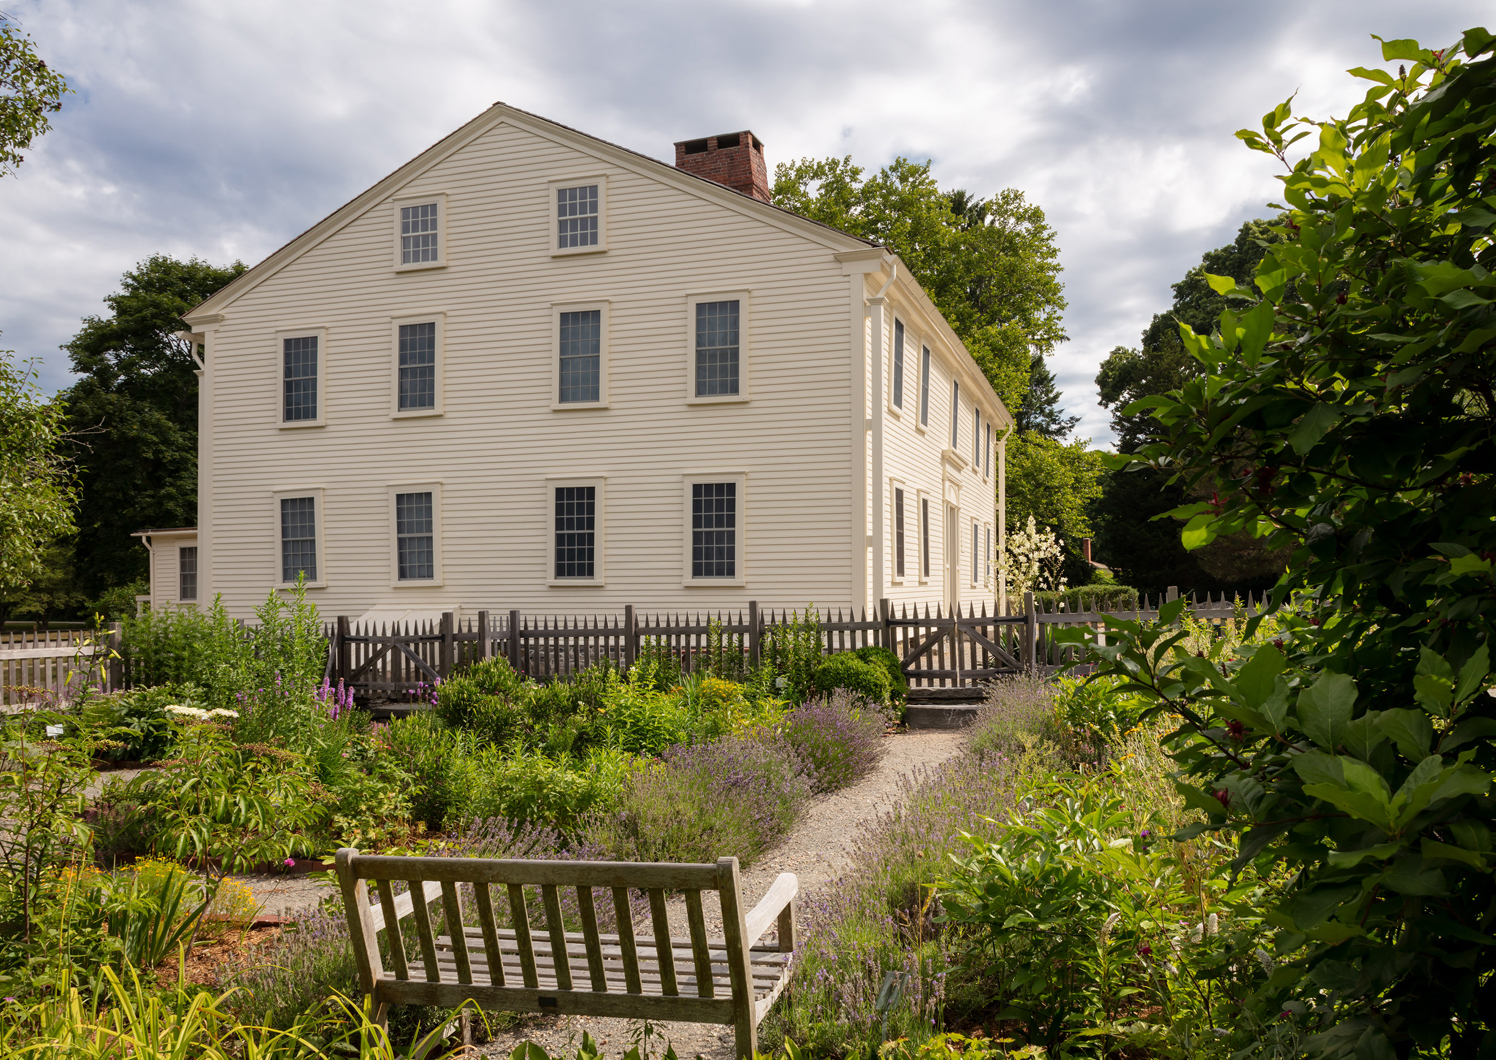 A view of Smith's Castle from the side with a garden in the foreground.